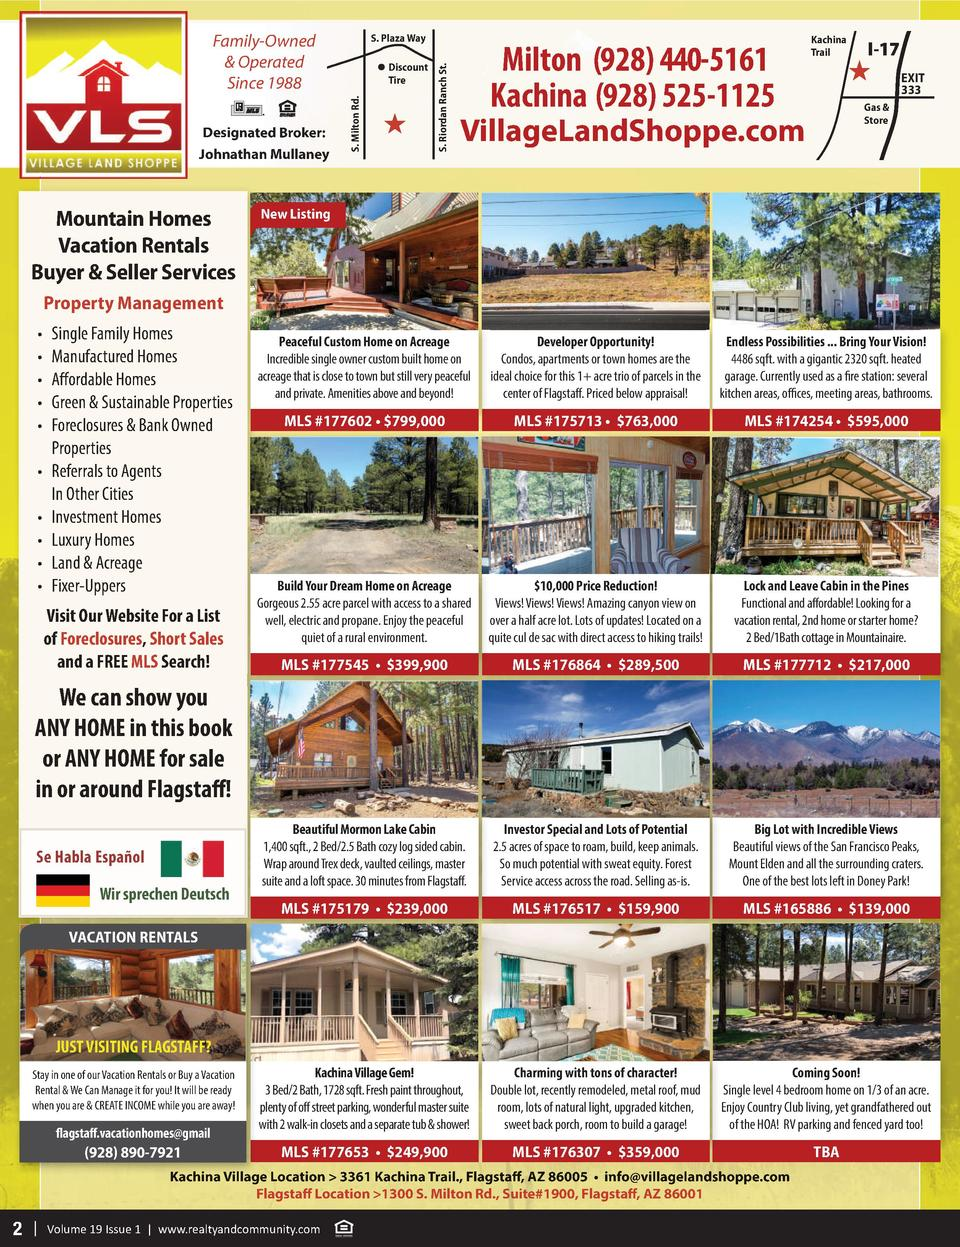 Family-Owned   Operated Since 1988  Mountain Homes Vacation Rentals Buyer   Seller Services  S. Riordan Ranch St.  Discoun...